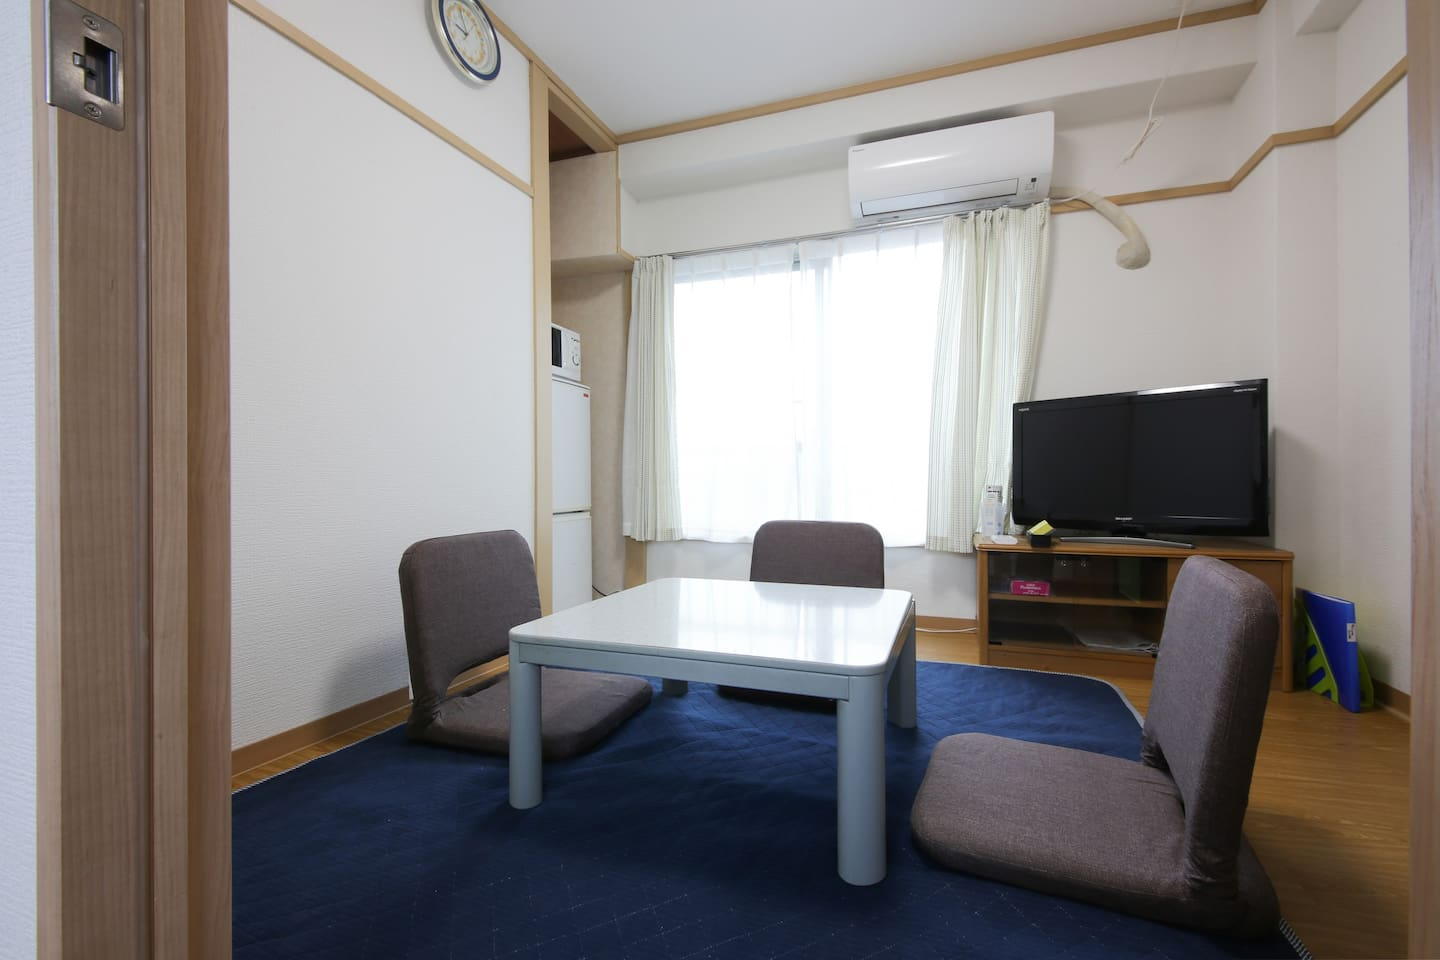 Cozy and comfortable room, welcome. 整洁舒适的房子,欢迎入住!